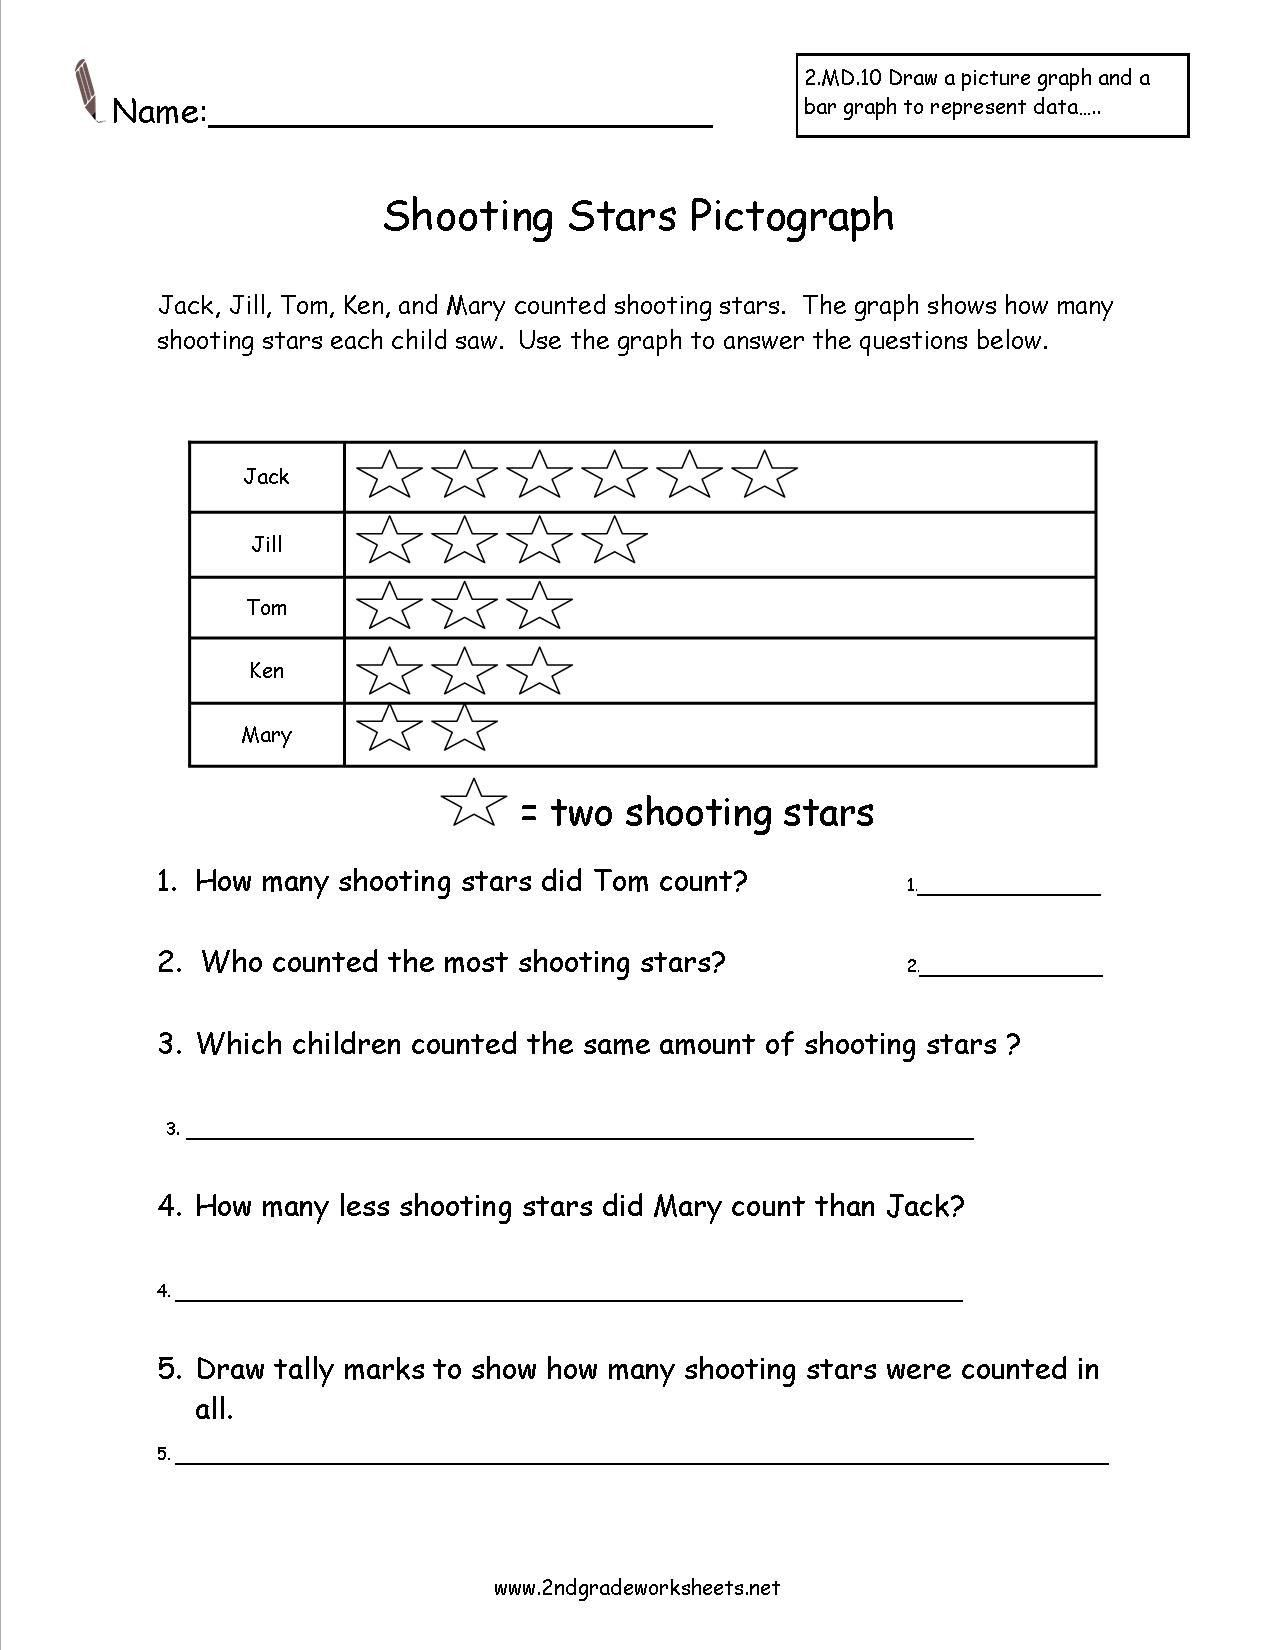 Pictograph Worksheets 2nd Grade Shooting Stars Pictograph Worksheet   Third grade  worksheets [ 1650 x 1275 Pixel ]